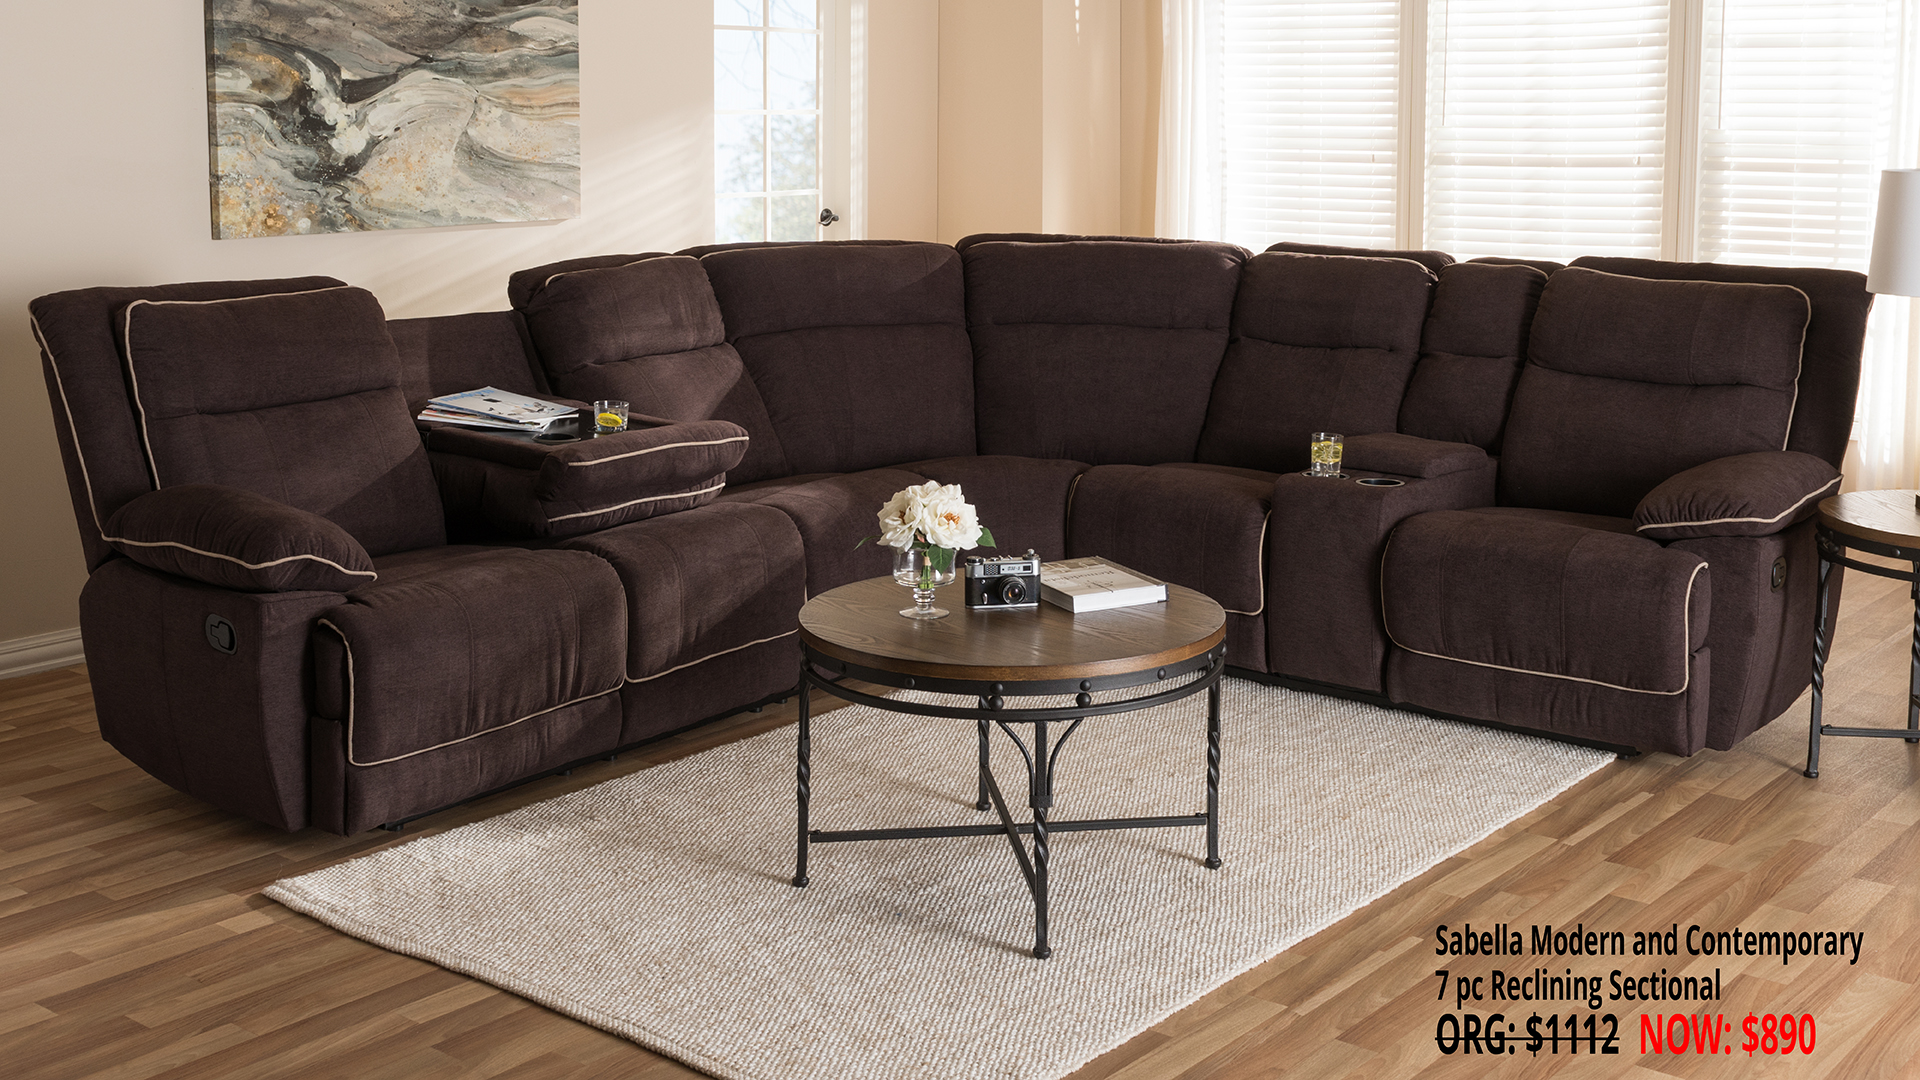 Cheap furniture stores in la bob s to enter los angeles for Affordable furniture la